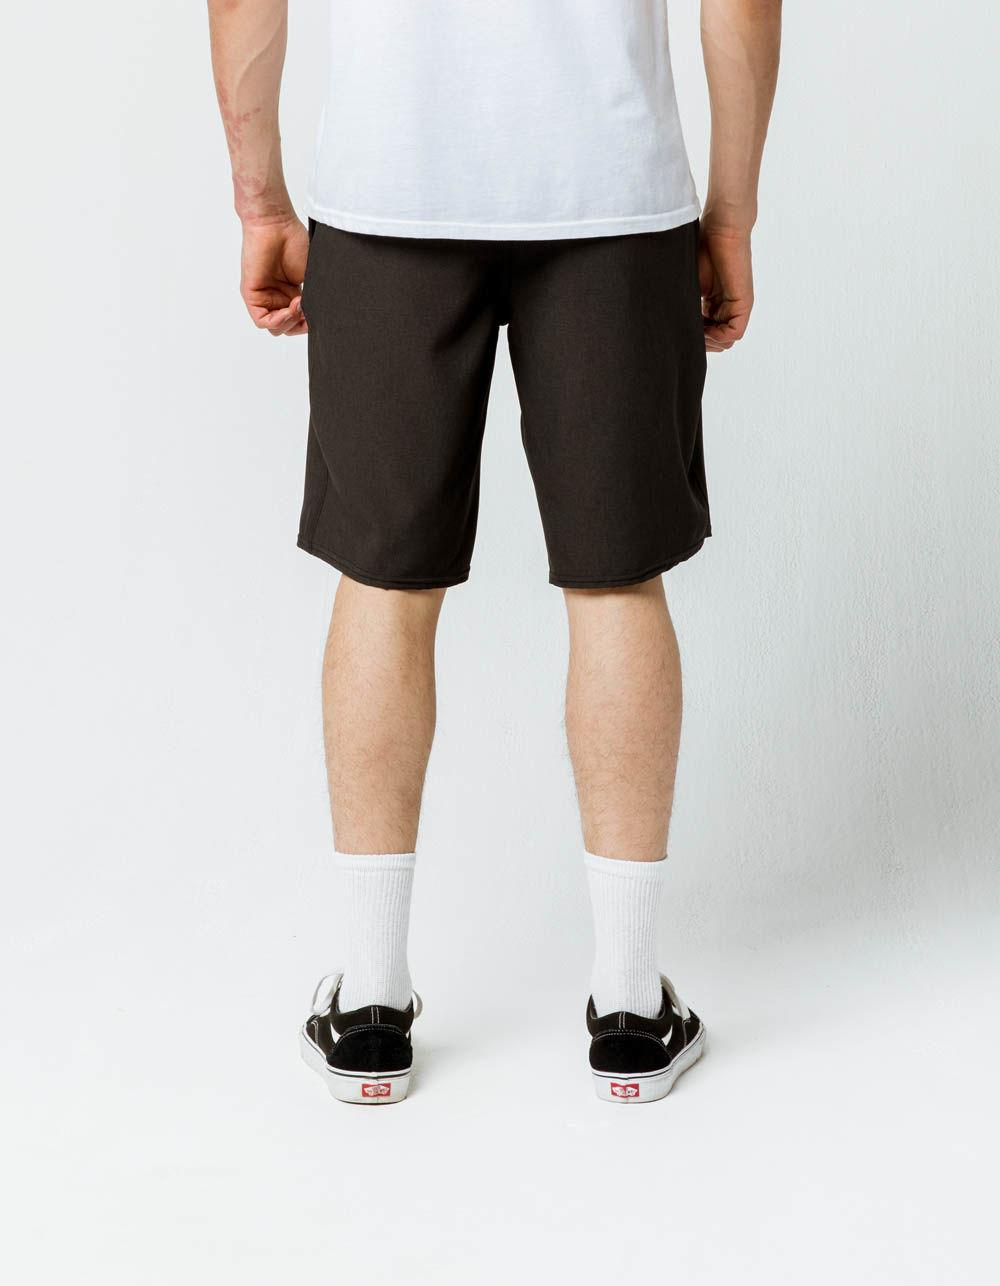 79bc17ded65f8 O'neill Sportswear - Reserve Heather Black Mens Hybrid Shorts for Men -  Lyst. View fullscreen